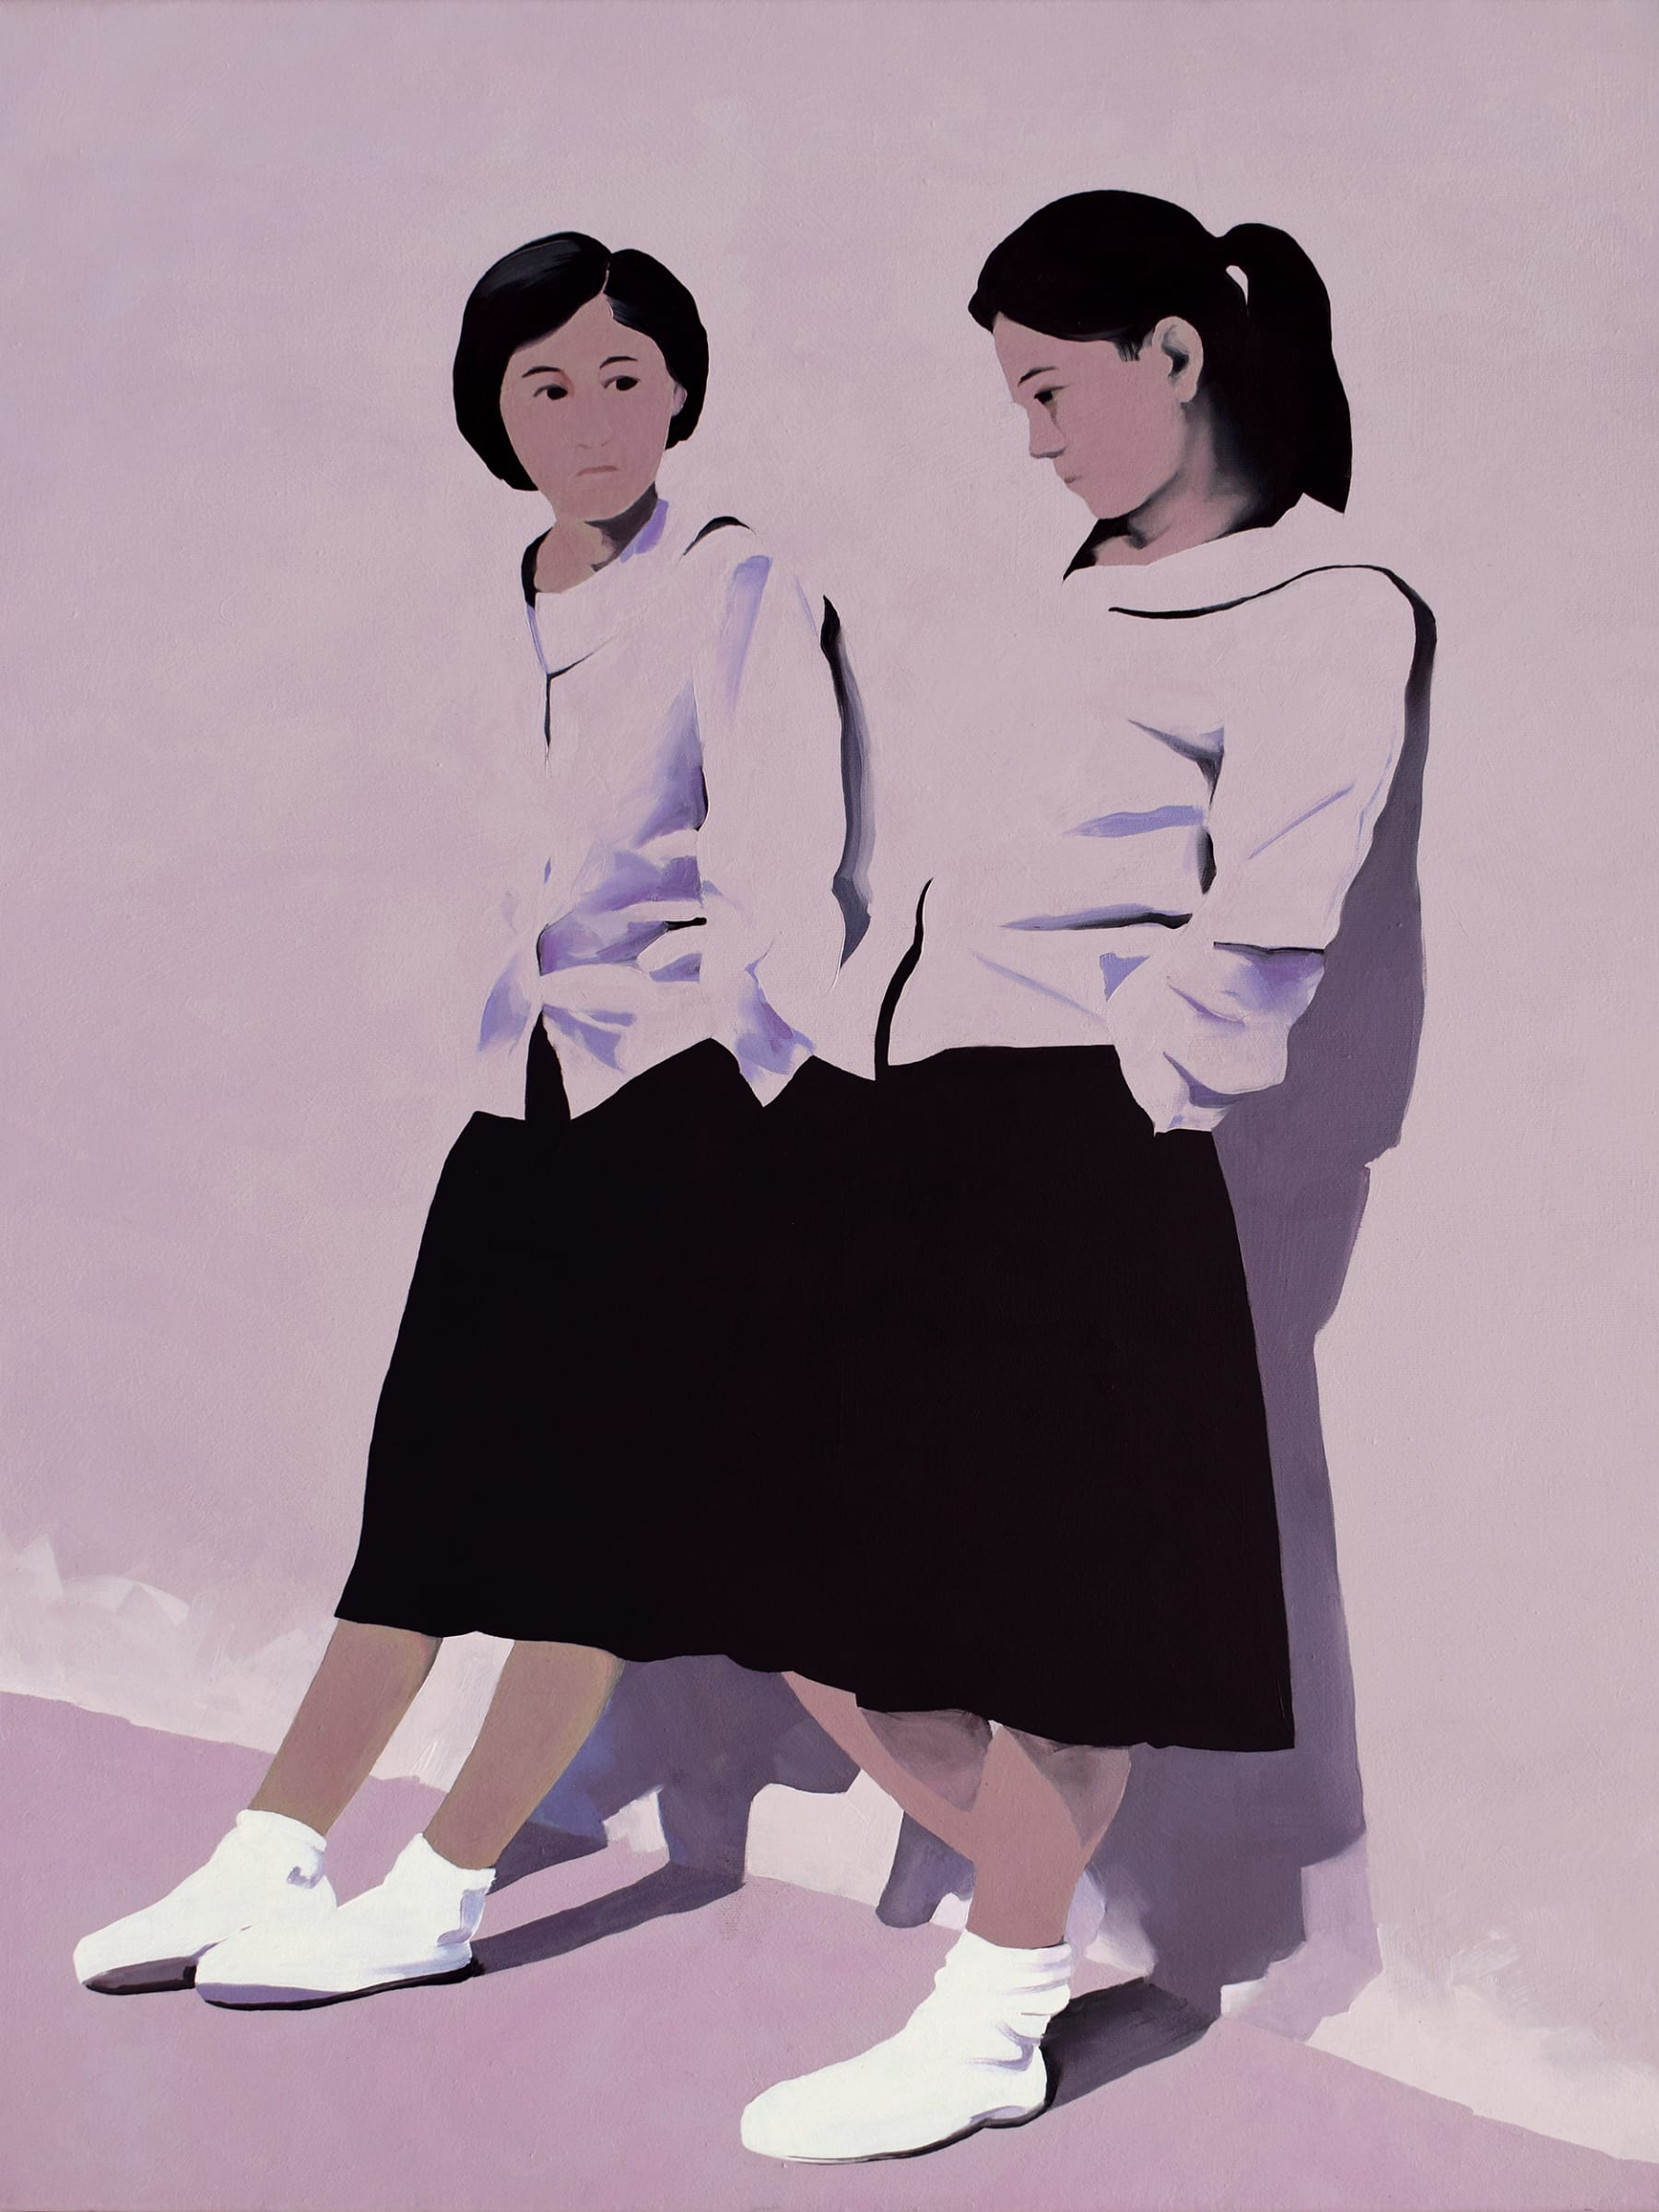 "<span class=""link fancybox-details-link""><a href=""/artists/54-jarek-puczel/works/579-jarek-puczel-secret/"">View Detail Page</a></span><div class=""artist""><strong>Jarek Puczel</strong></div> <div class=""title""><em>Secret</em></div> <div class=""medium"">Oil on Canvas </div> <div class=""dimensions"">31.5 x 23.6 inches </div>"